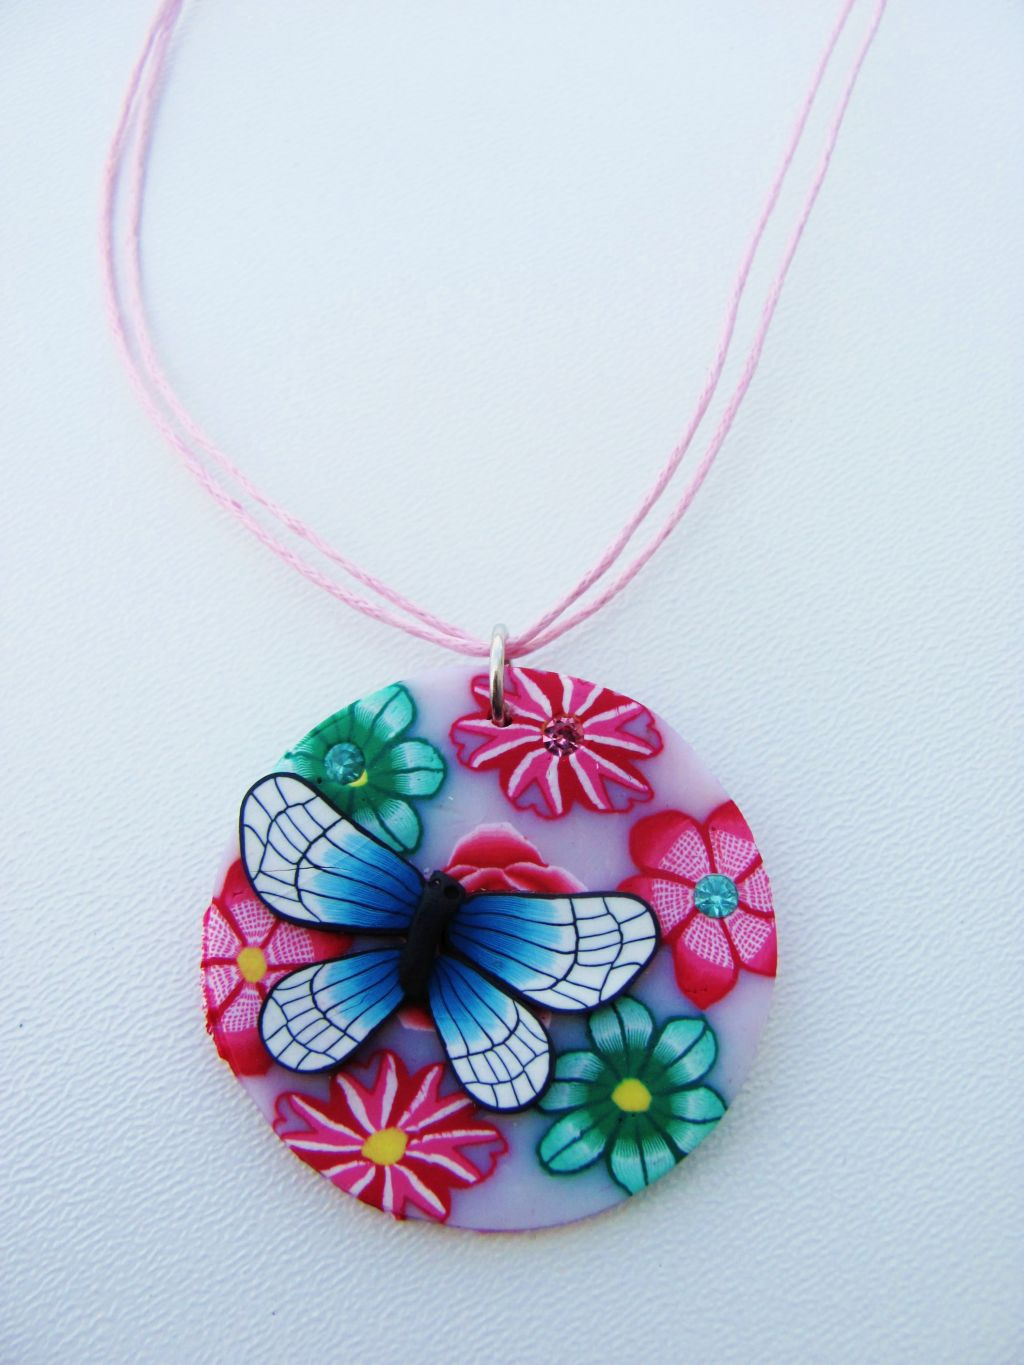 Butterfly & Flowers Girls Summer Colors Beach Pendant Necklace, Pink Cotton Strings